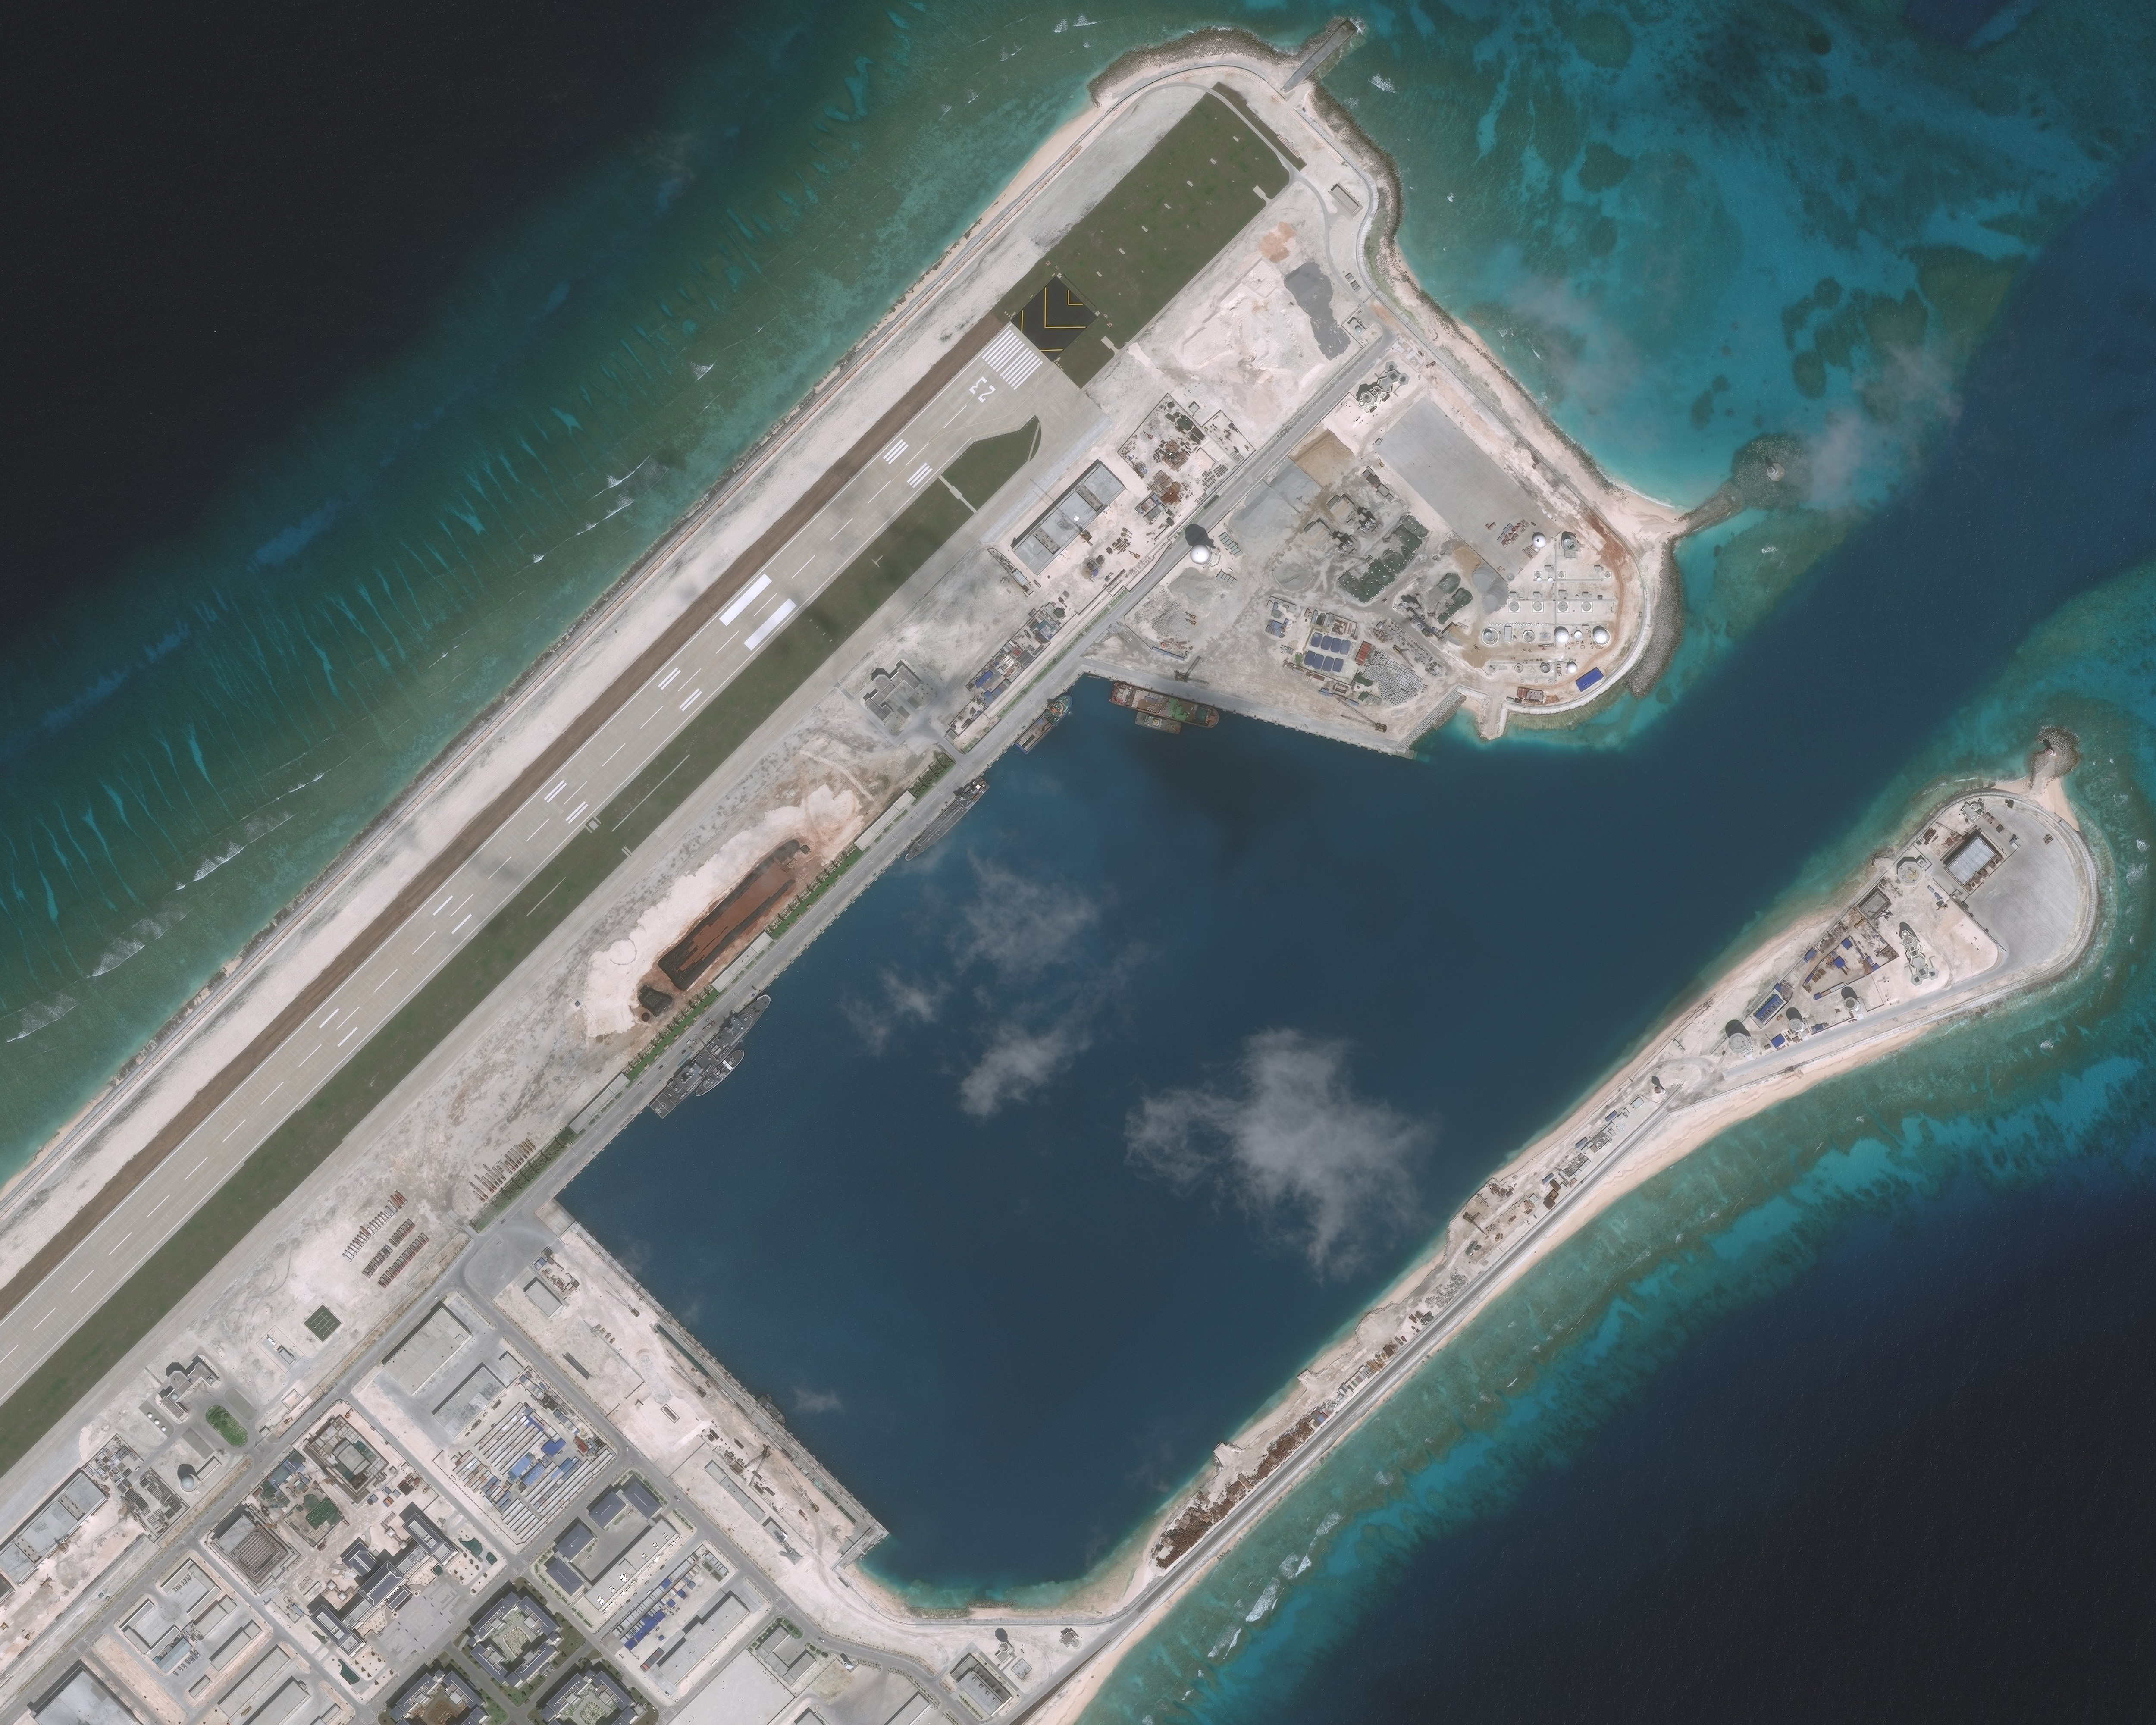 NOV 10, 2016: DigitalGlobe imagery (closeup-2) of the Fiery Cross Reef located in the South China Sea. Fiery Cross is located in the western part of the Spratly Islands group.